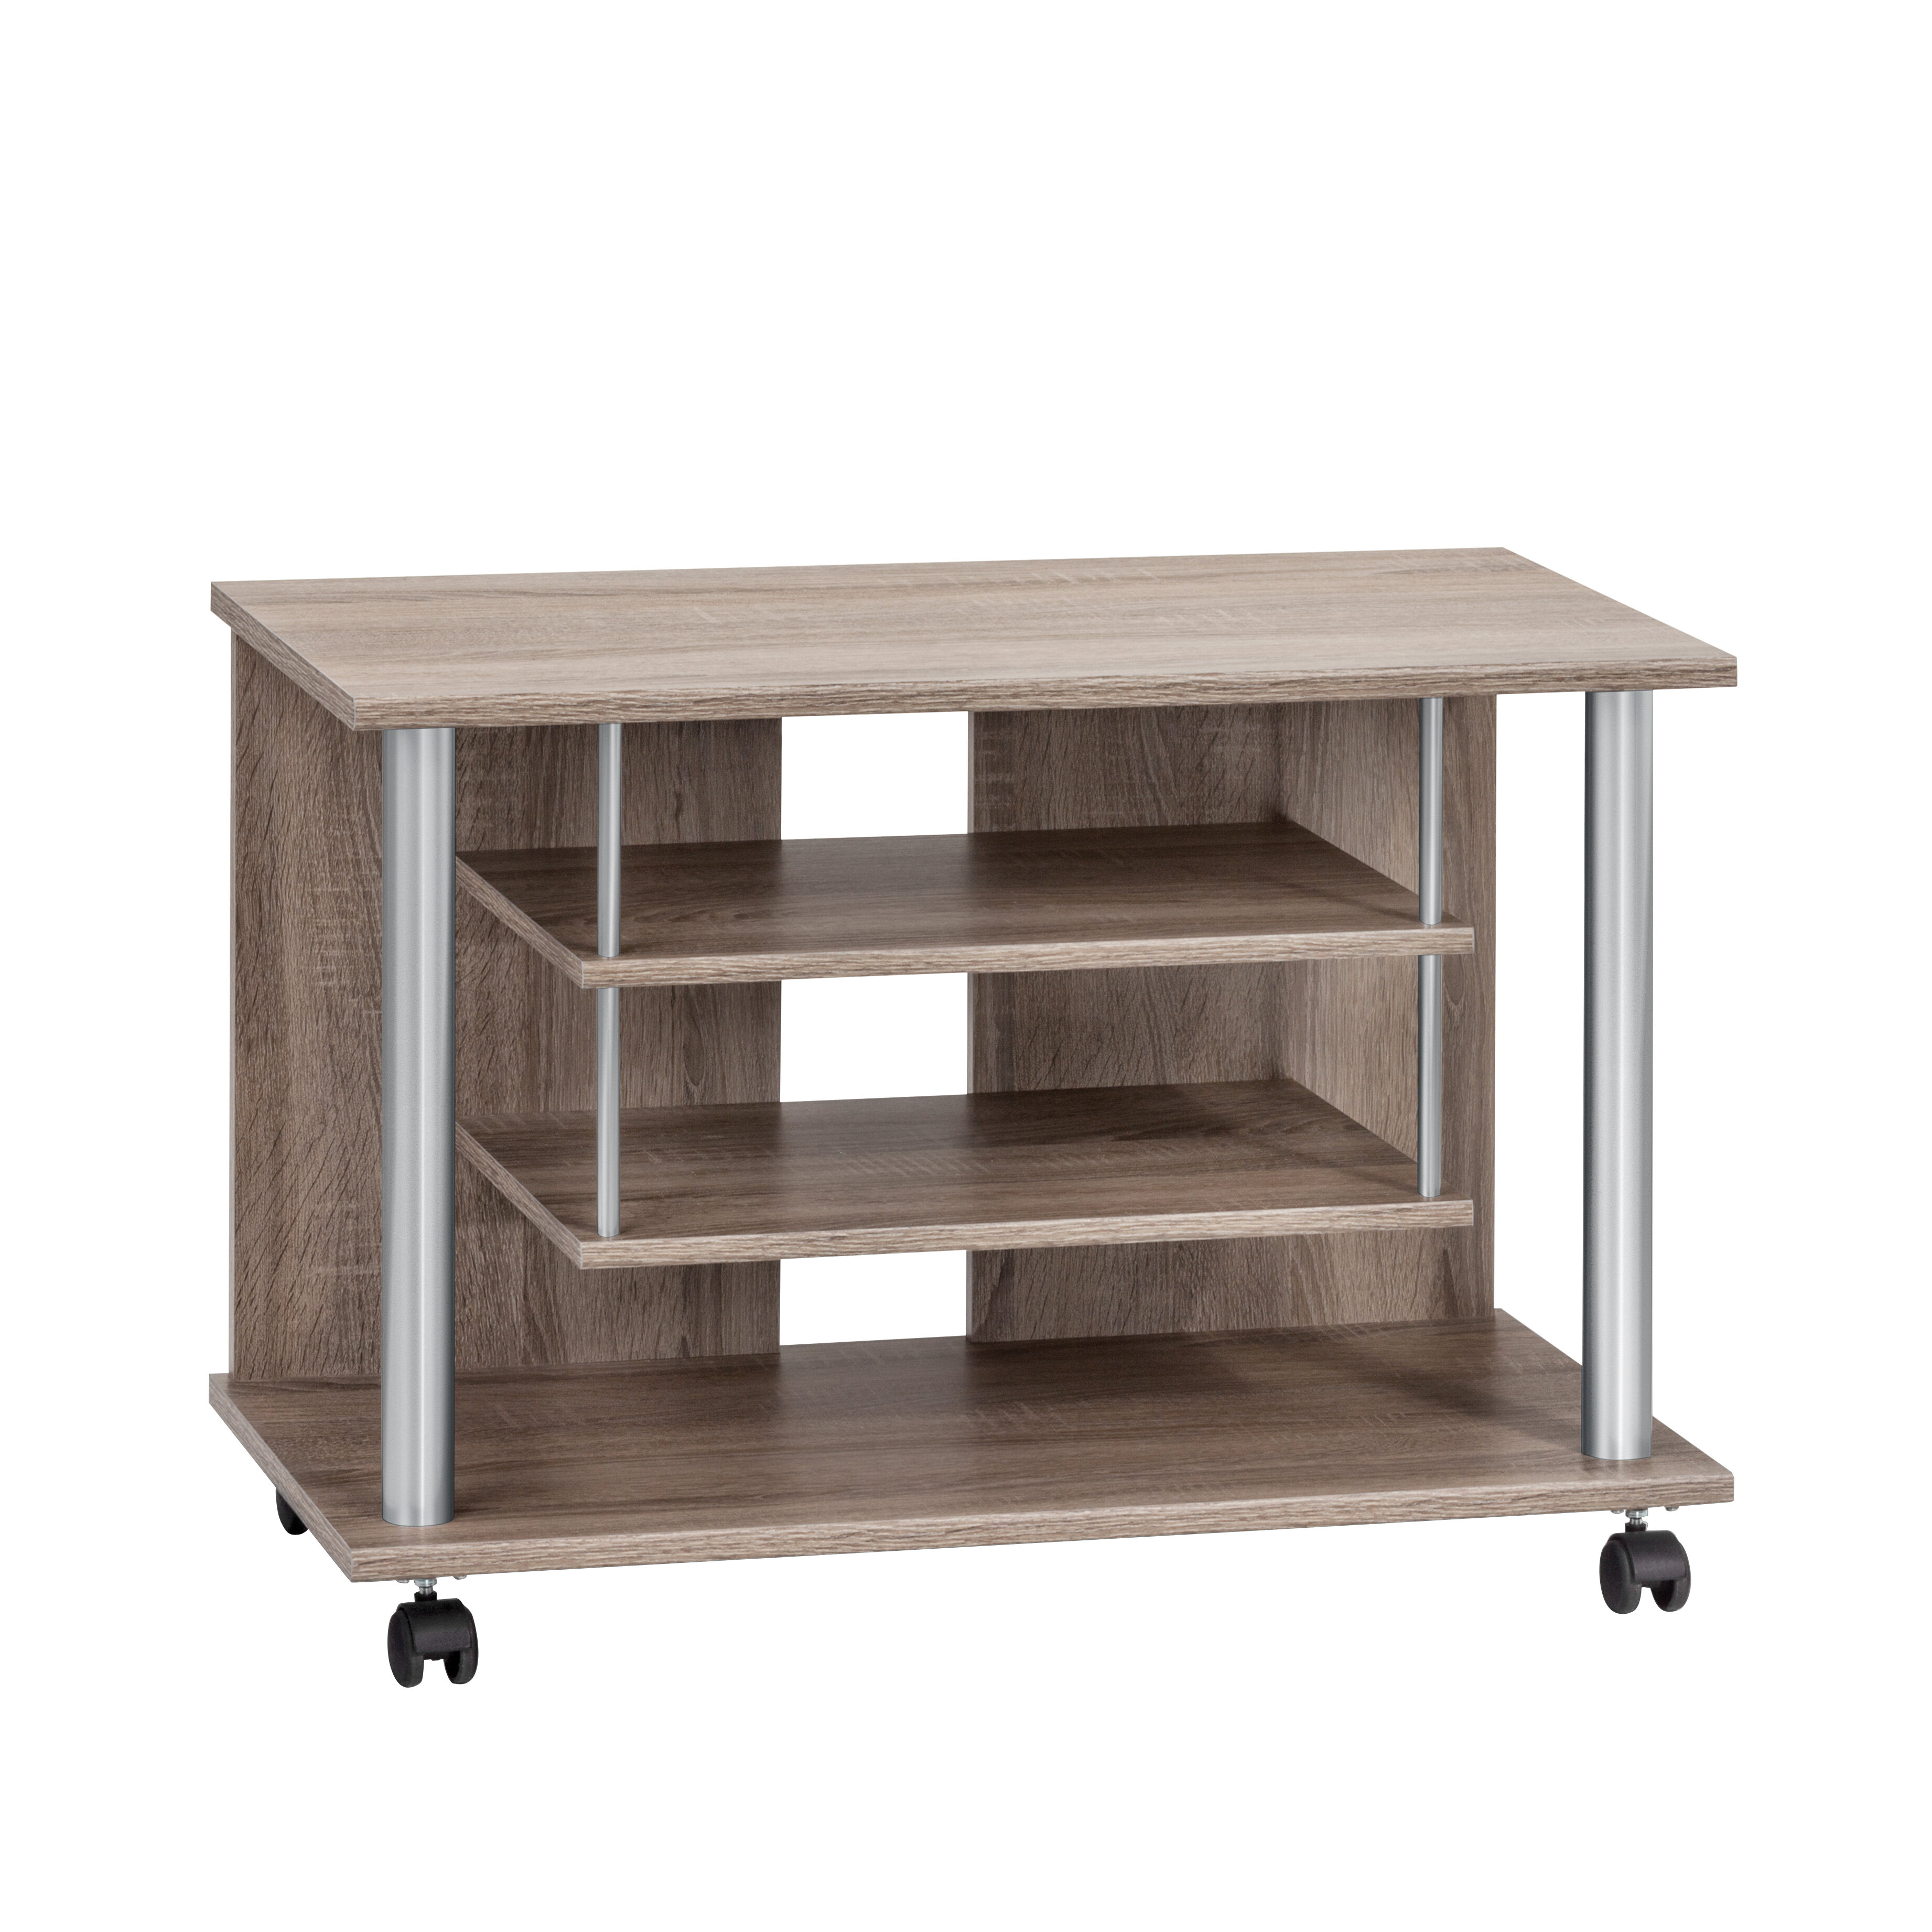 bookshelf glam diy the on pin ikea your marbles hyllis shelves hack and unit shelf metal into wood easiest wheels to gold marble